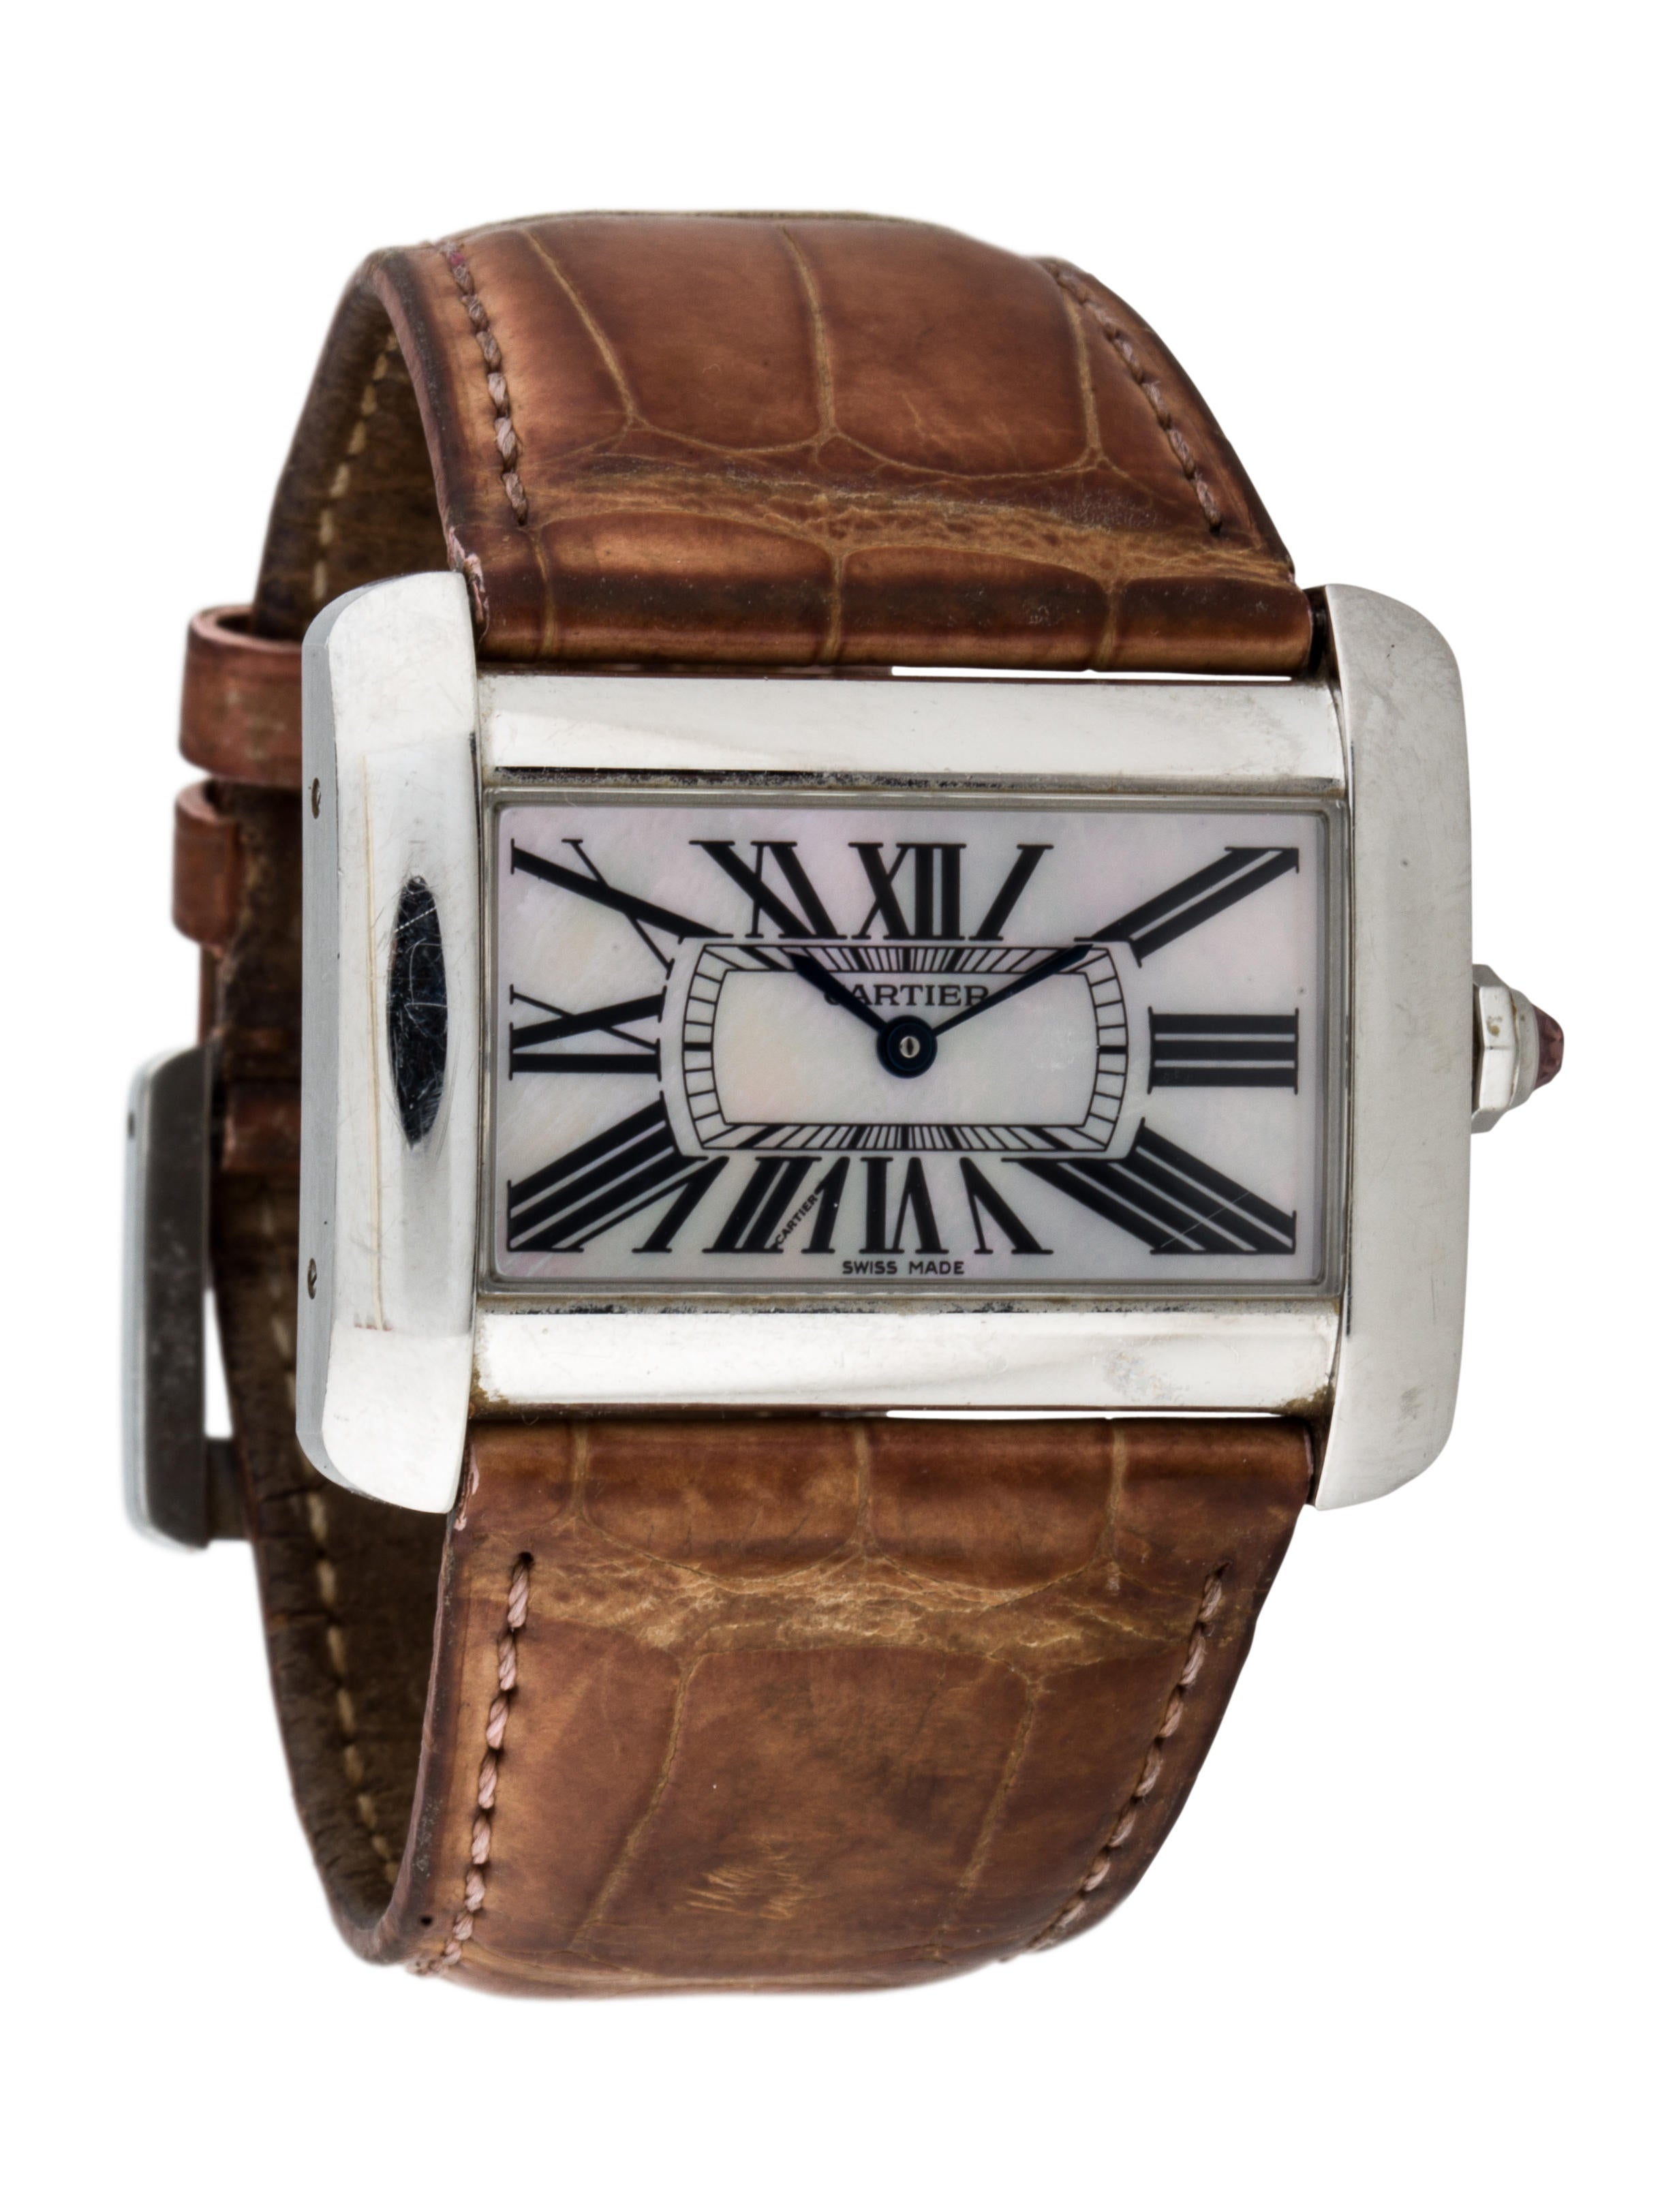 Cartier tank divan watch strap crt24165 the realreal for Cartier divan xl